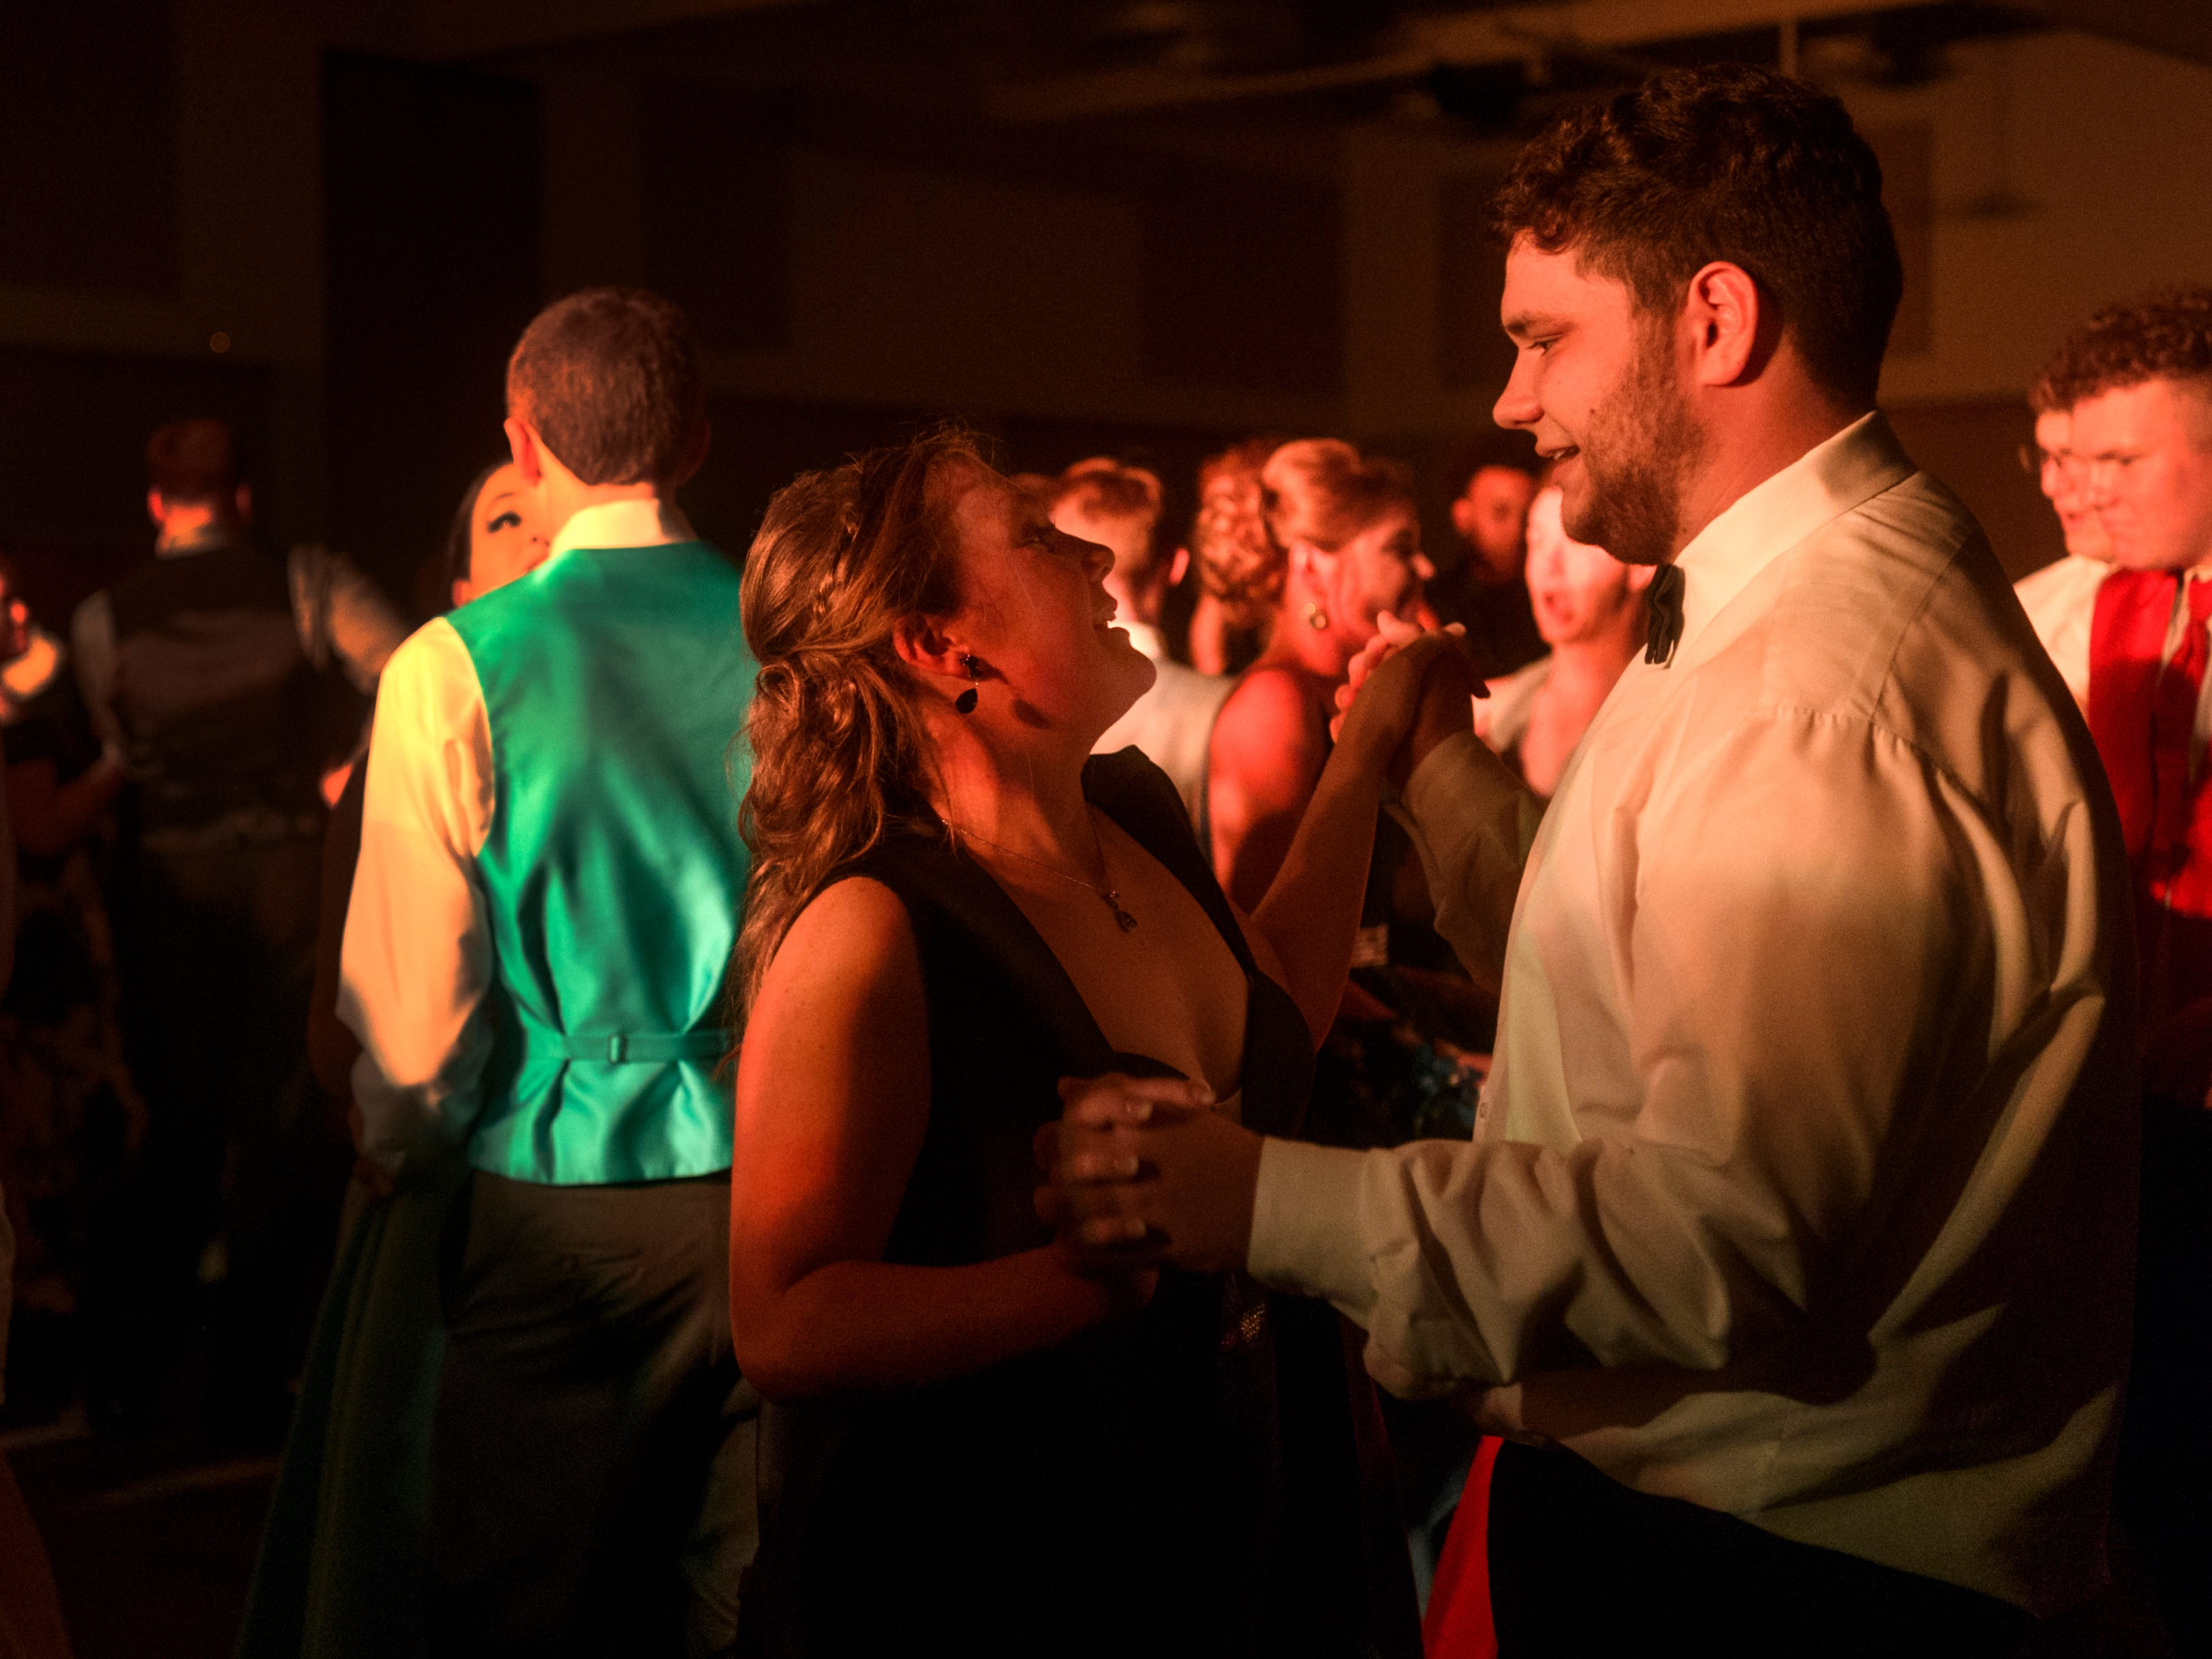 Hannah Nurrenbern, left, and Cameron McIntyre, right, dance together during Mt. Vernon's prom held inside the University of Southern Indiana's Carter Hall in Evansville, Ind., Saturday, May 4, 2019.